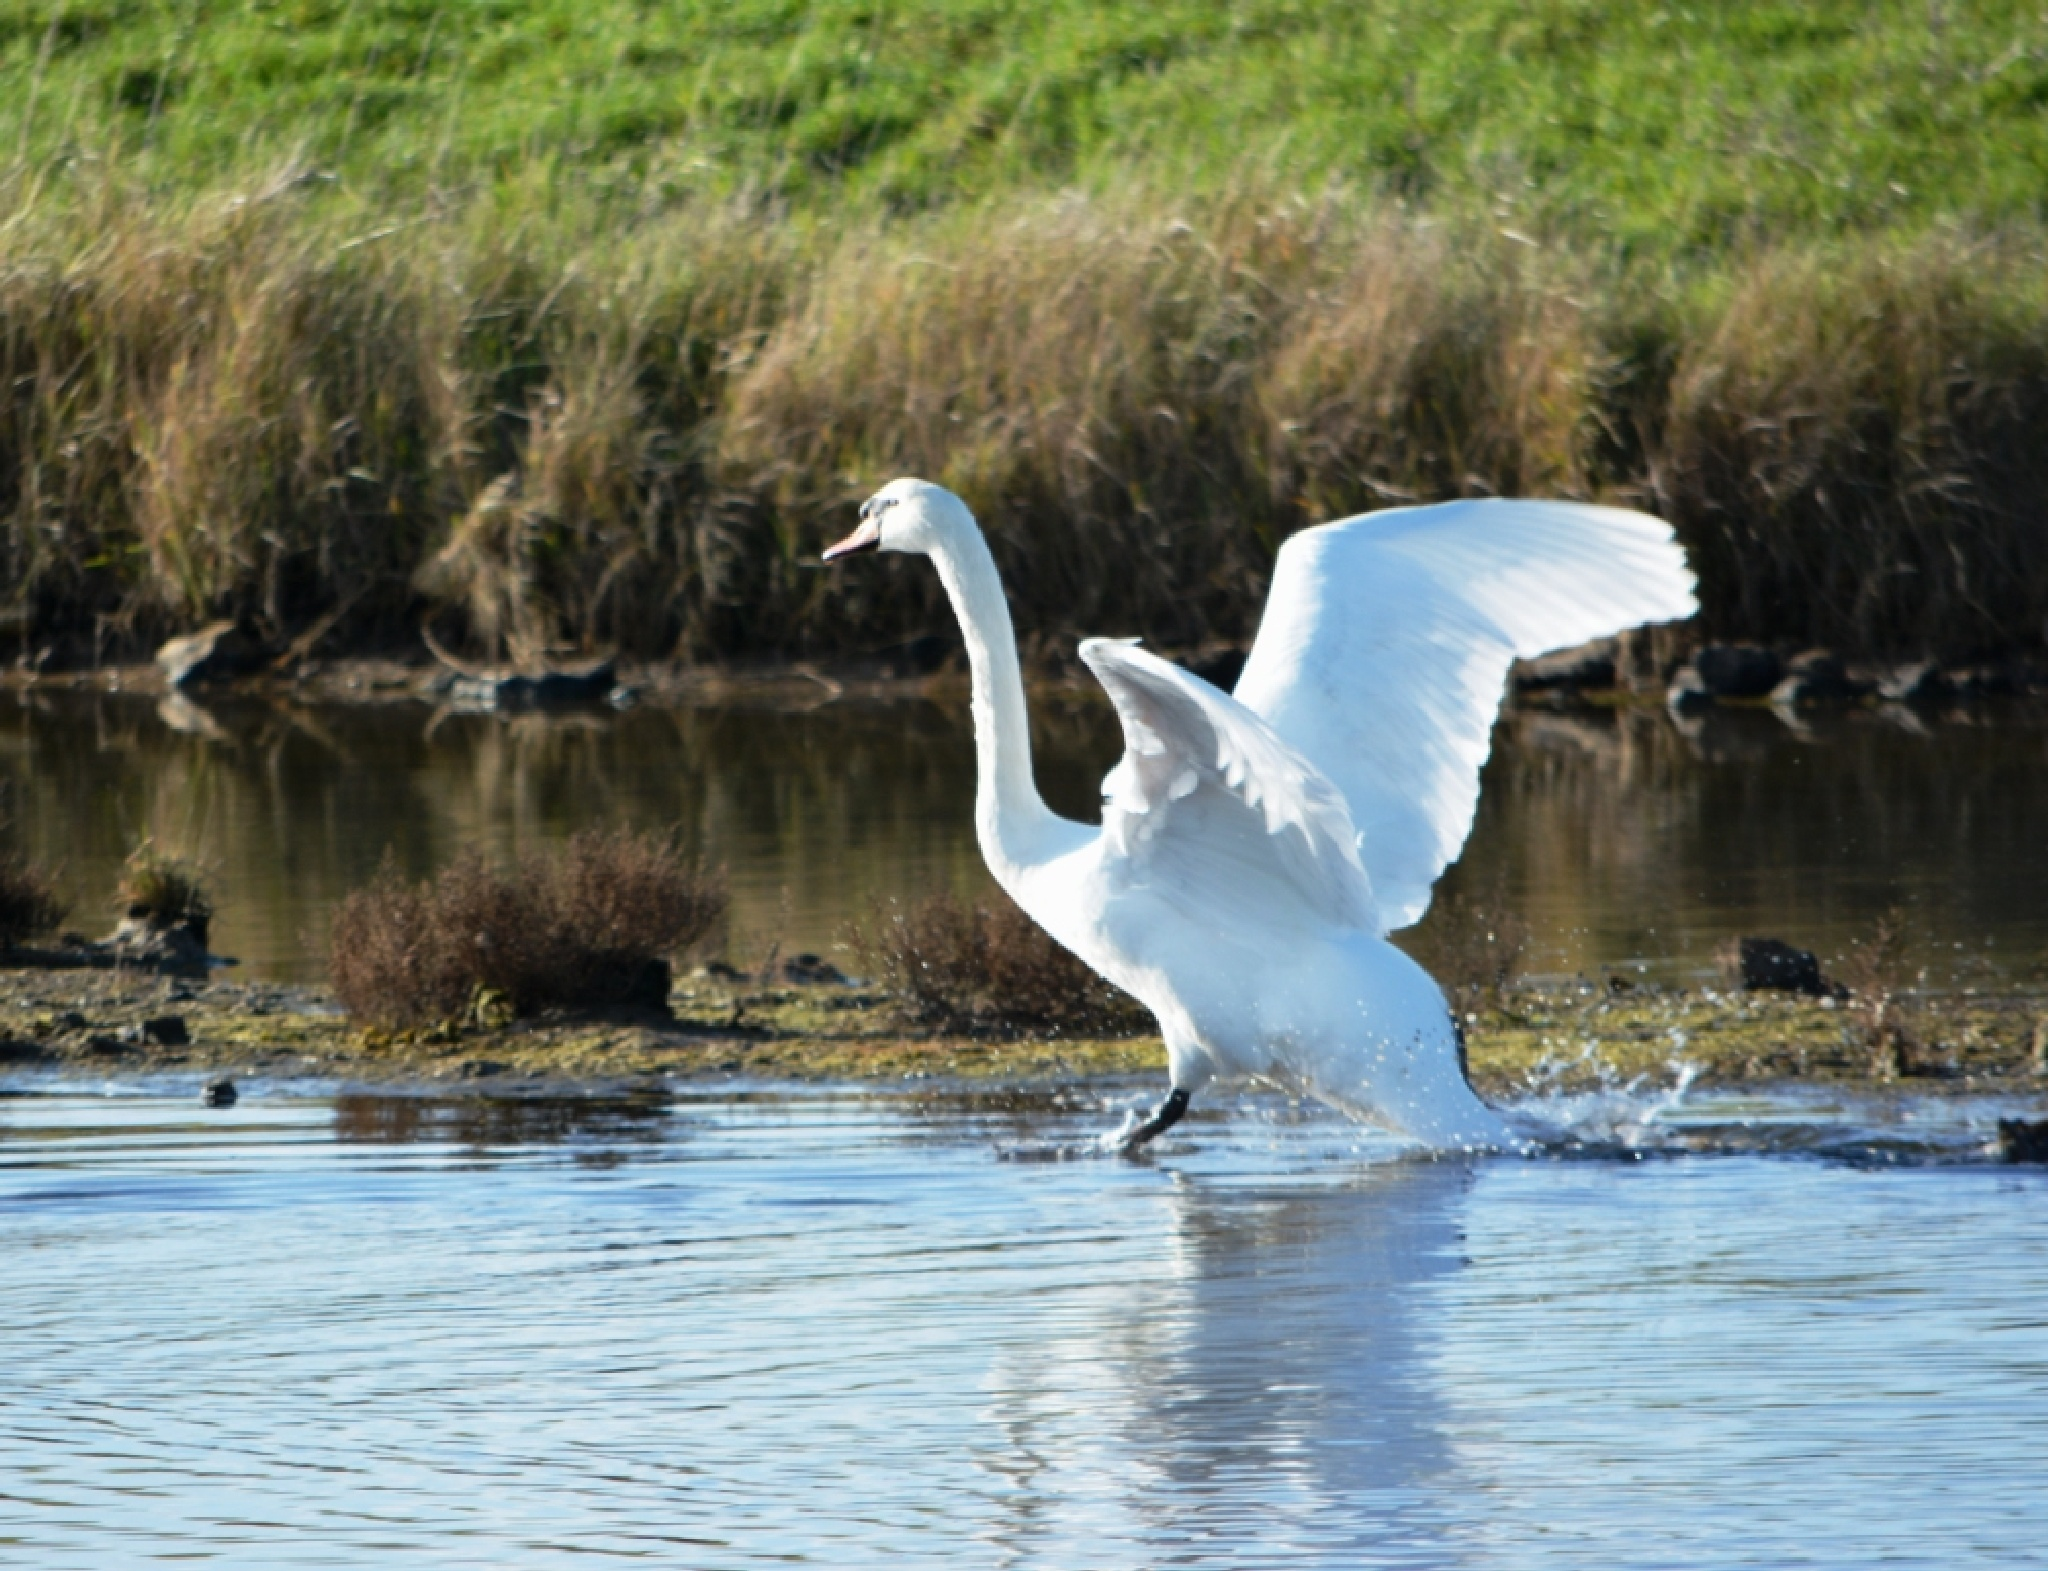 A wild swan about to take off by alison16